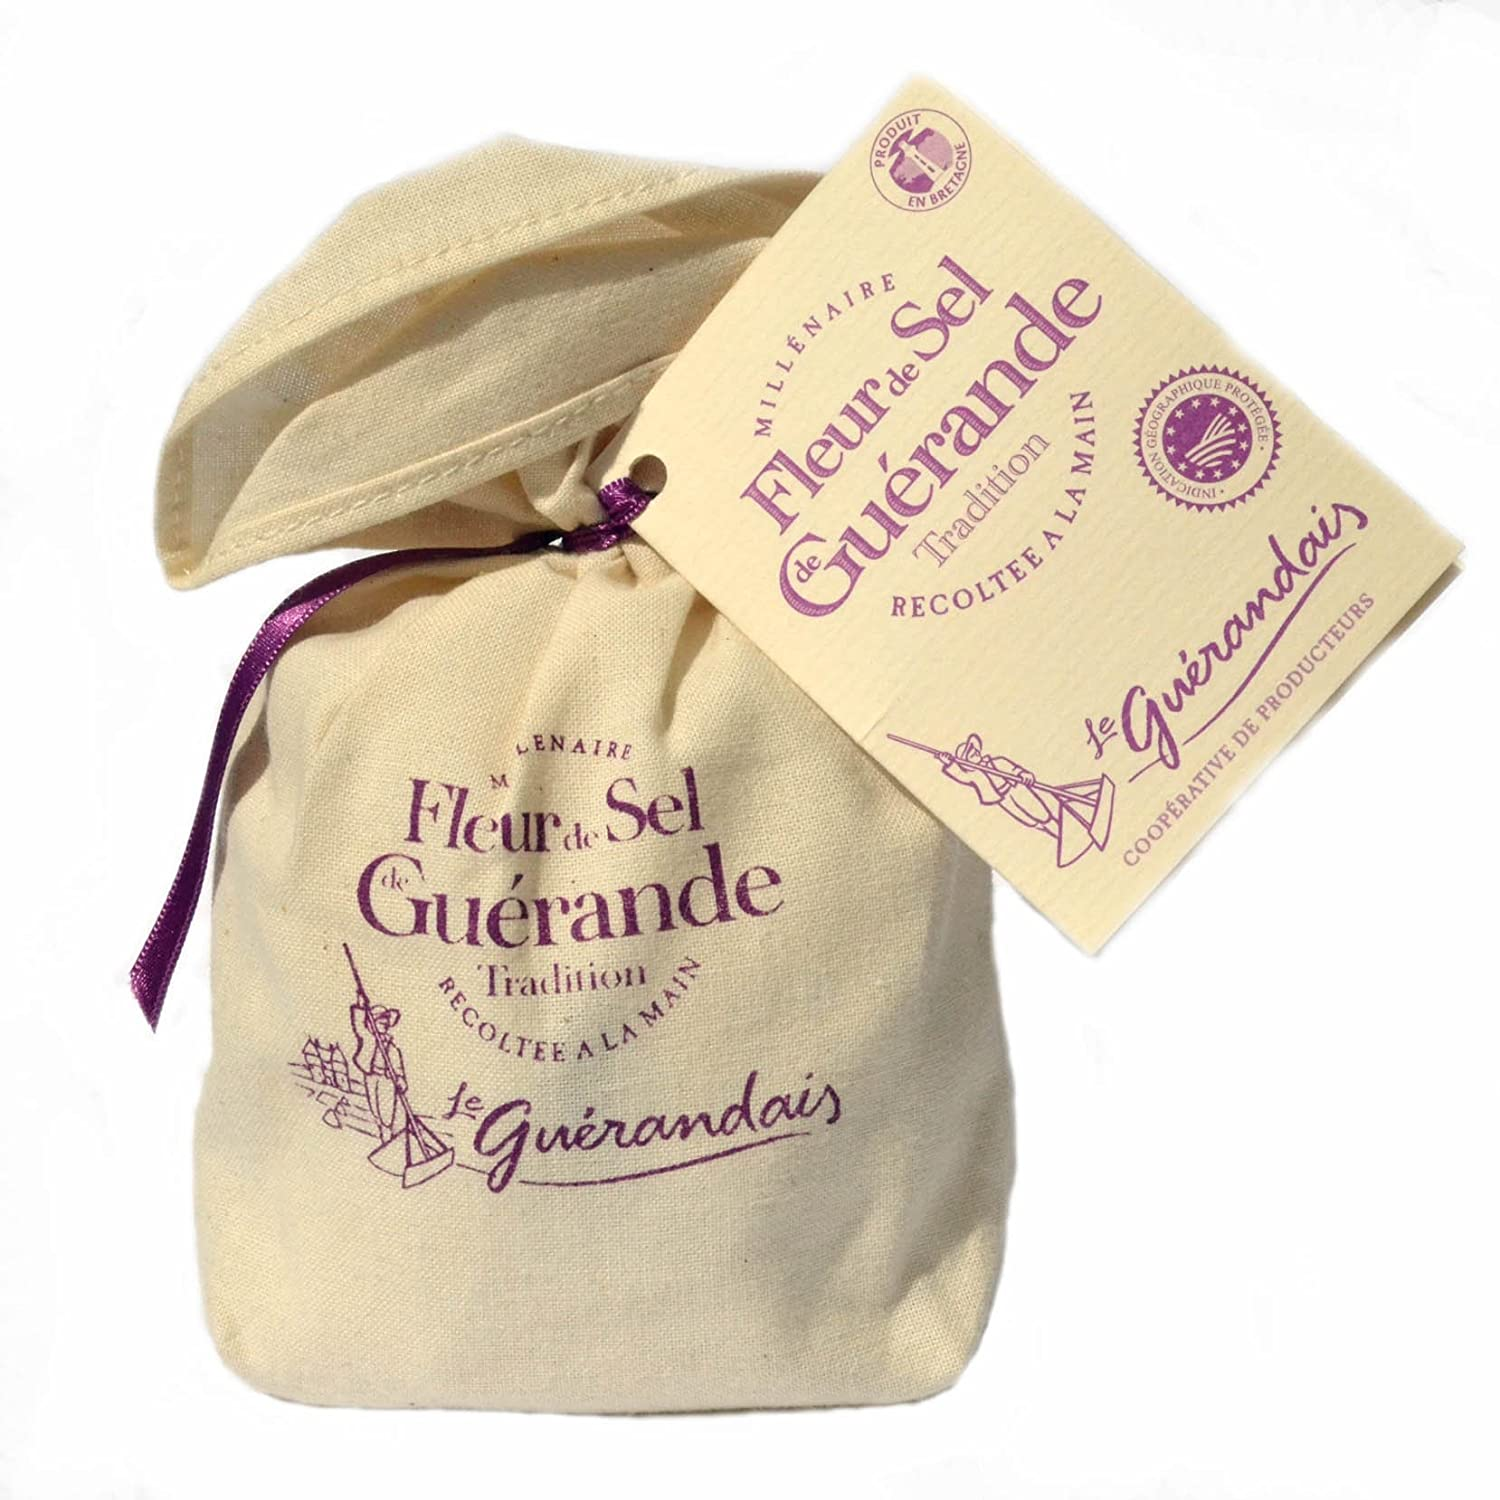 Fleur De Sel De Guerande 125 G In Linen Gift Bag Amazon Co Uk Grocery